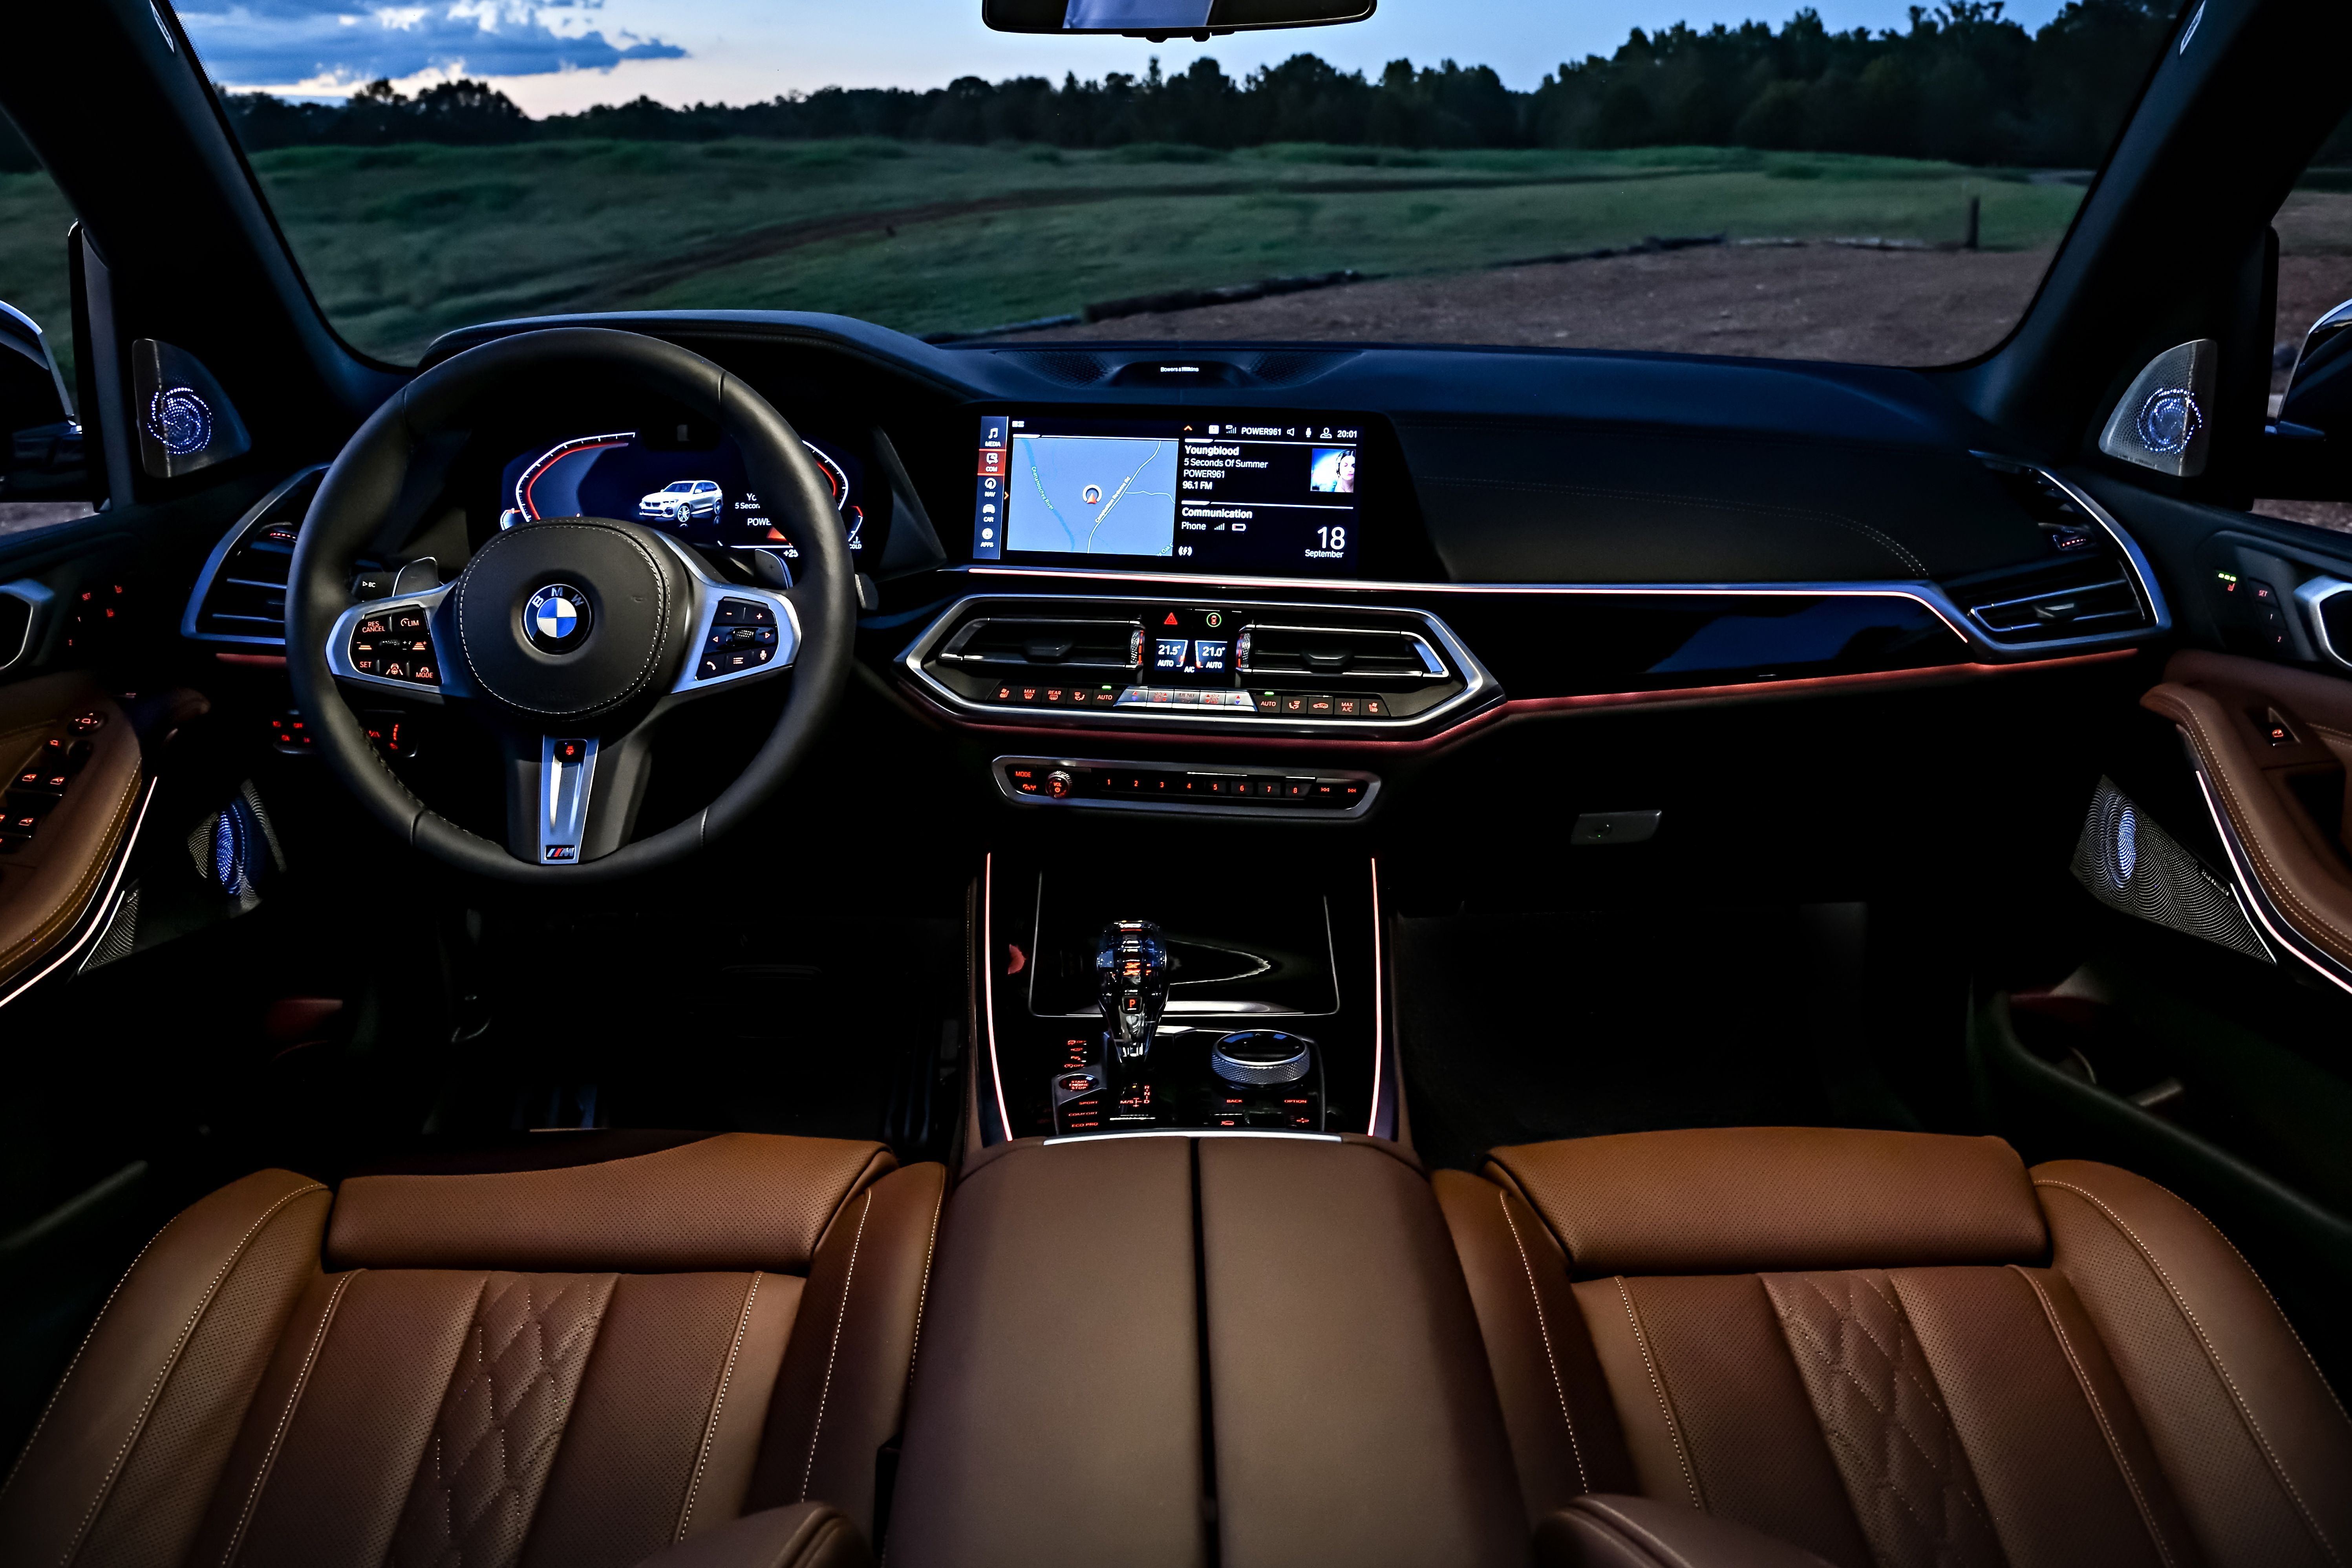 Pin By Vitcop Vitalev On Exoticness In 2020 Bmw Suv Bmw X5 Bmw